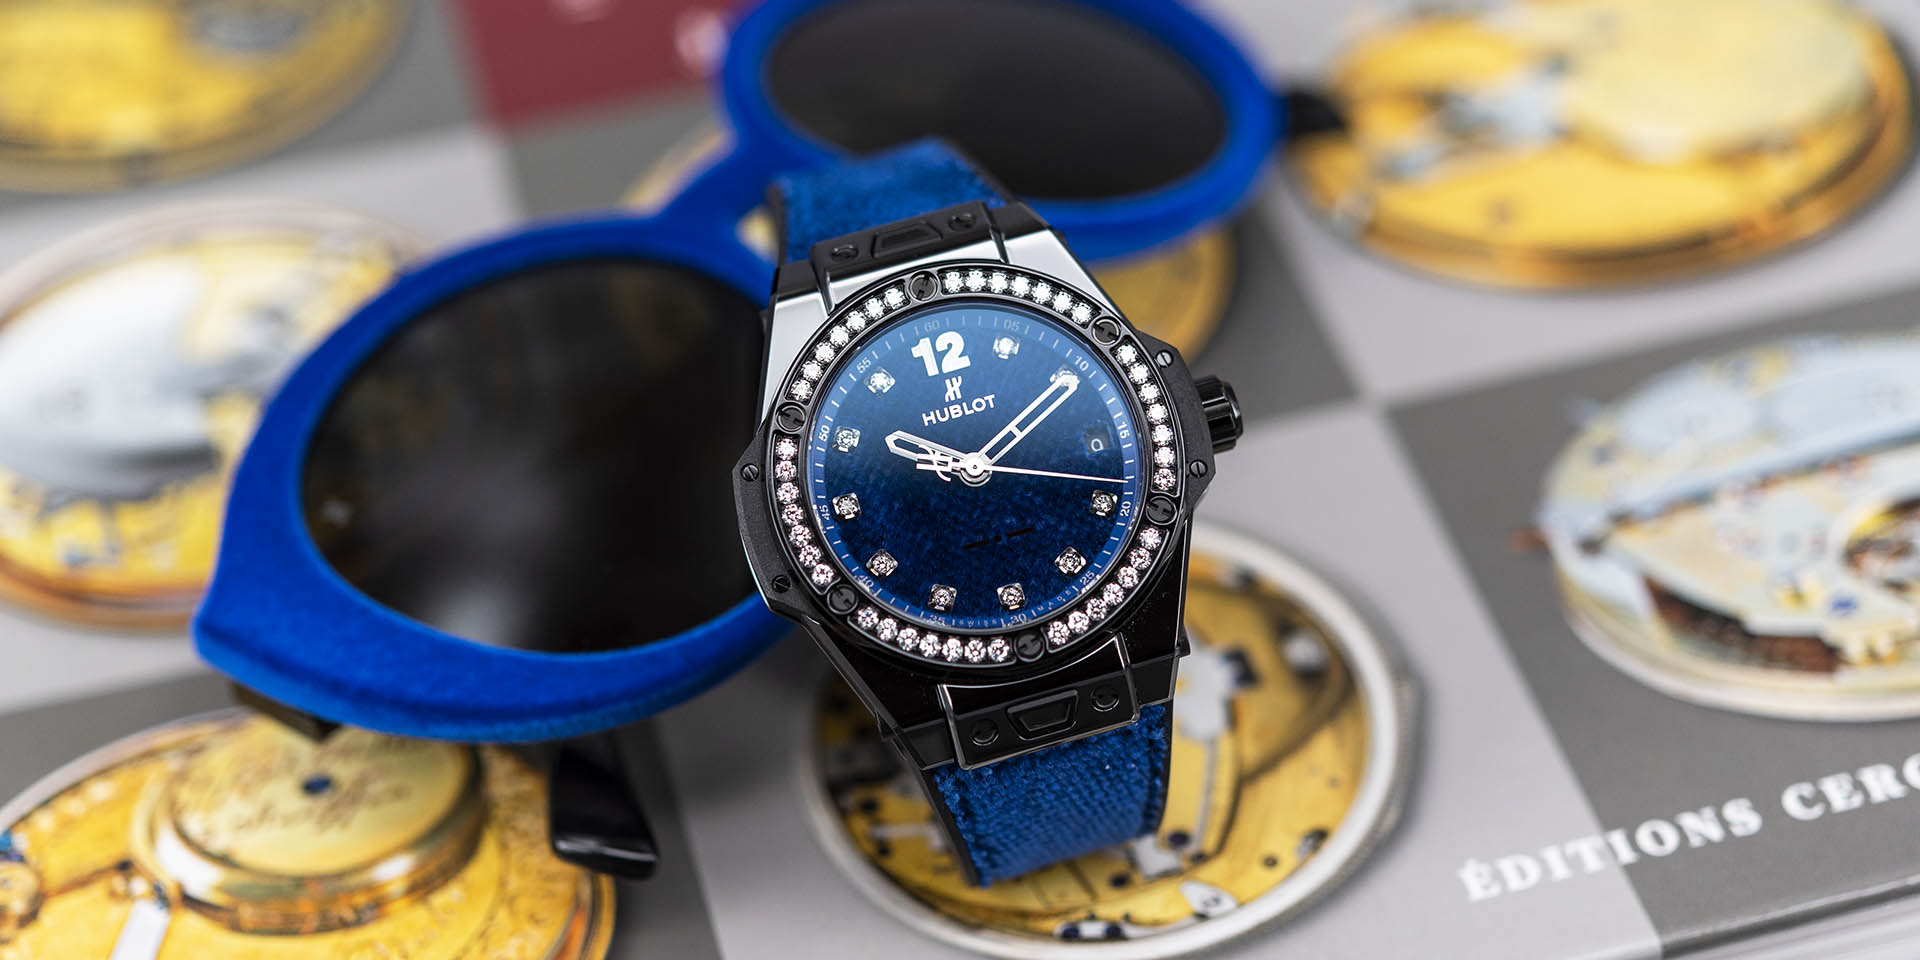 465-cs-277l-nr-1204-iti17-hublot-big-bang-one-click-italia-independent-blue-velvet-1.jpg